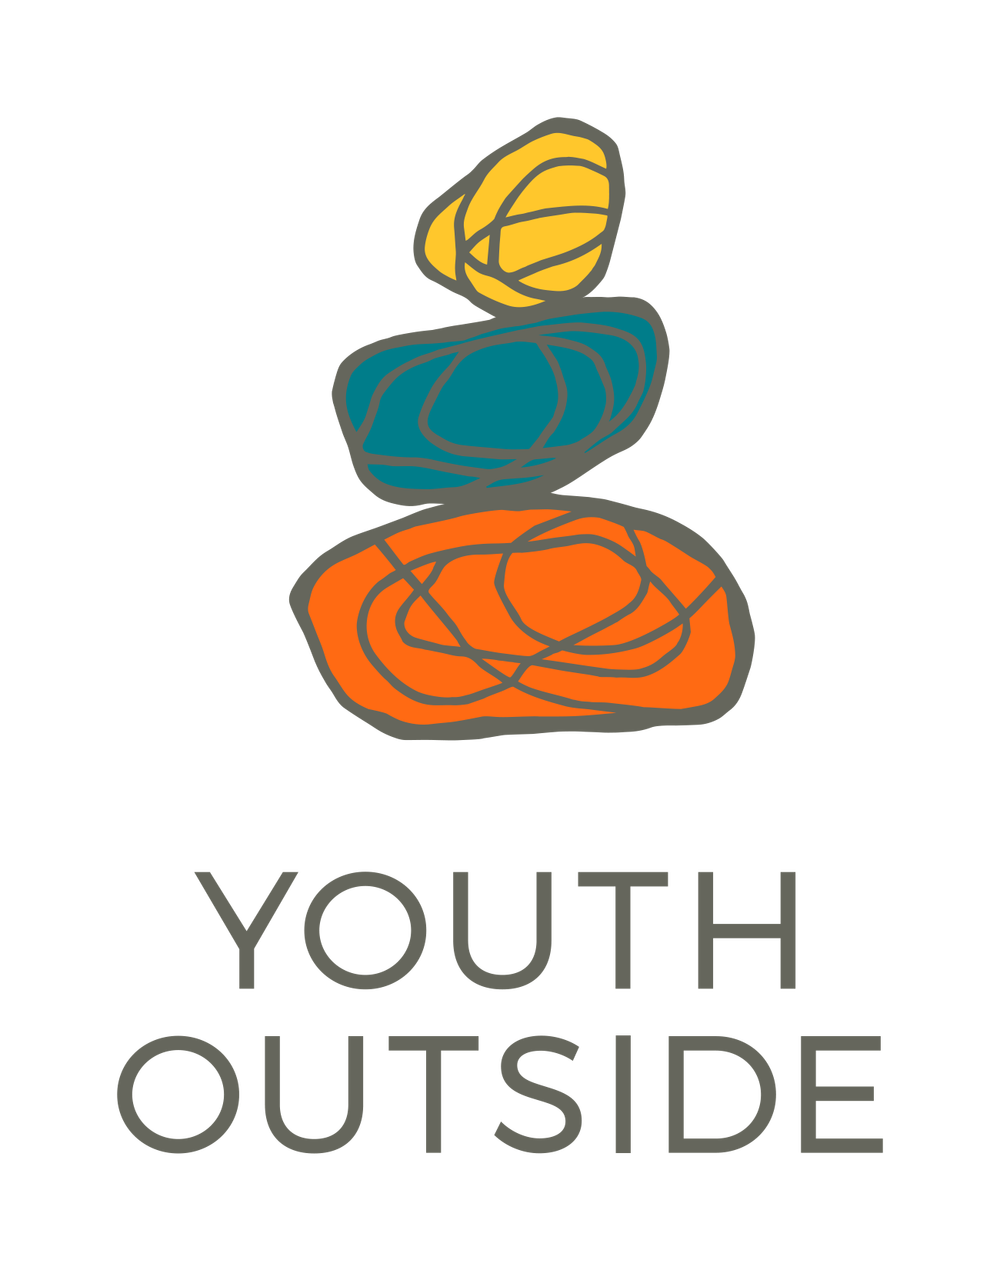 Youth Outside graphic